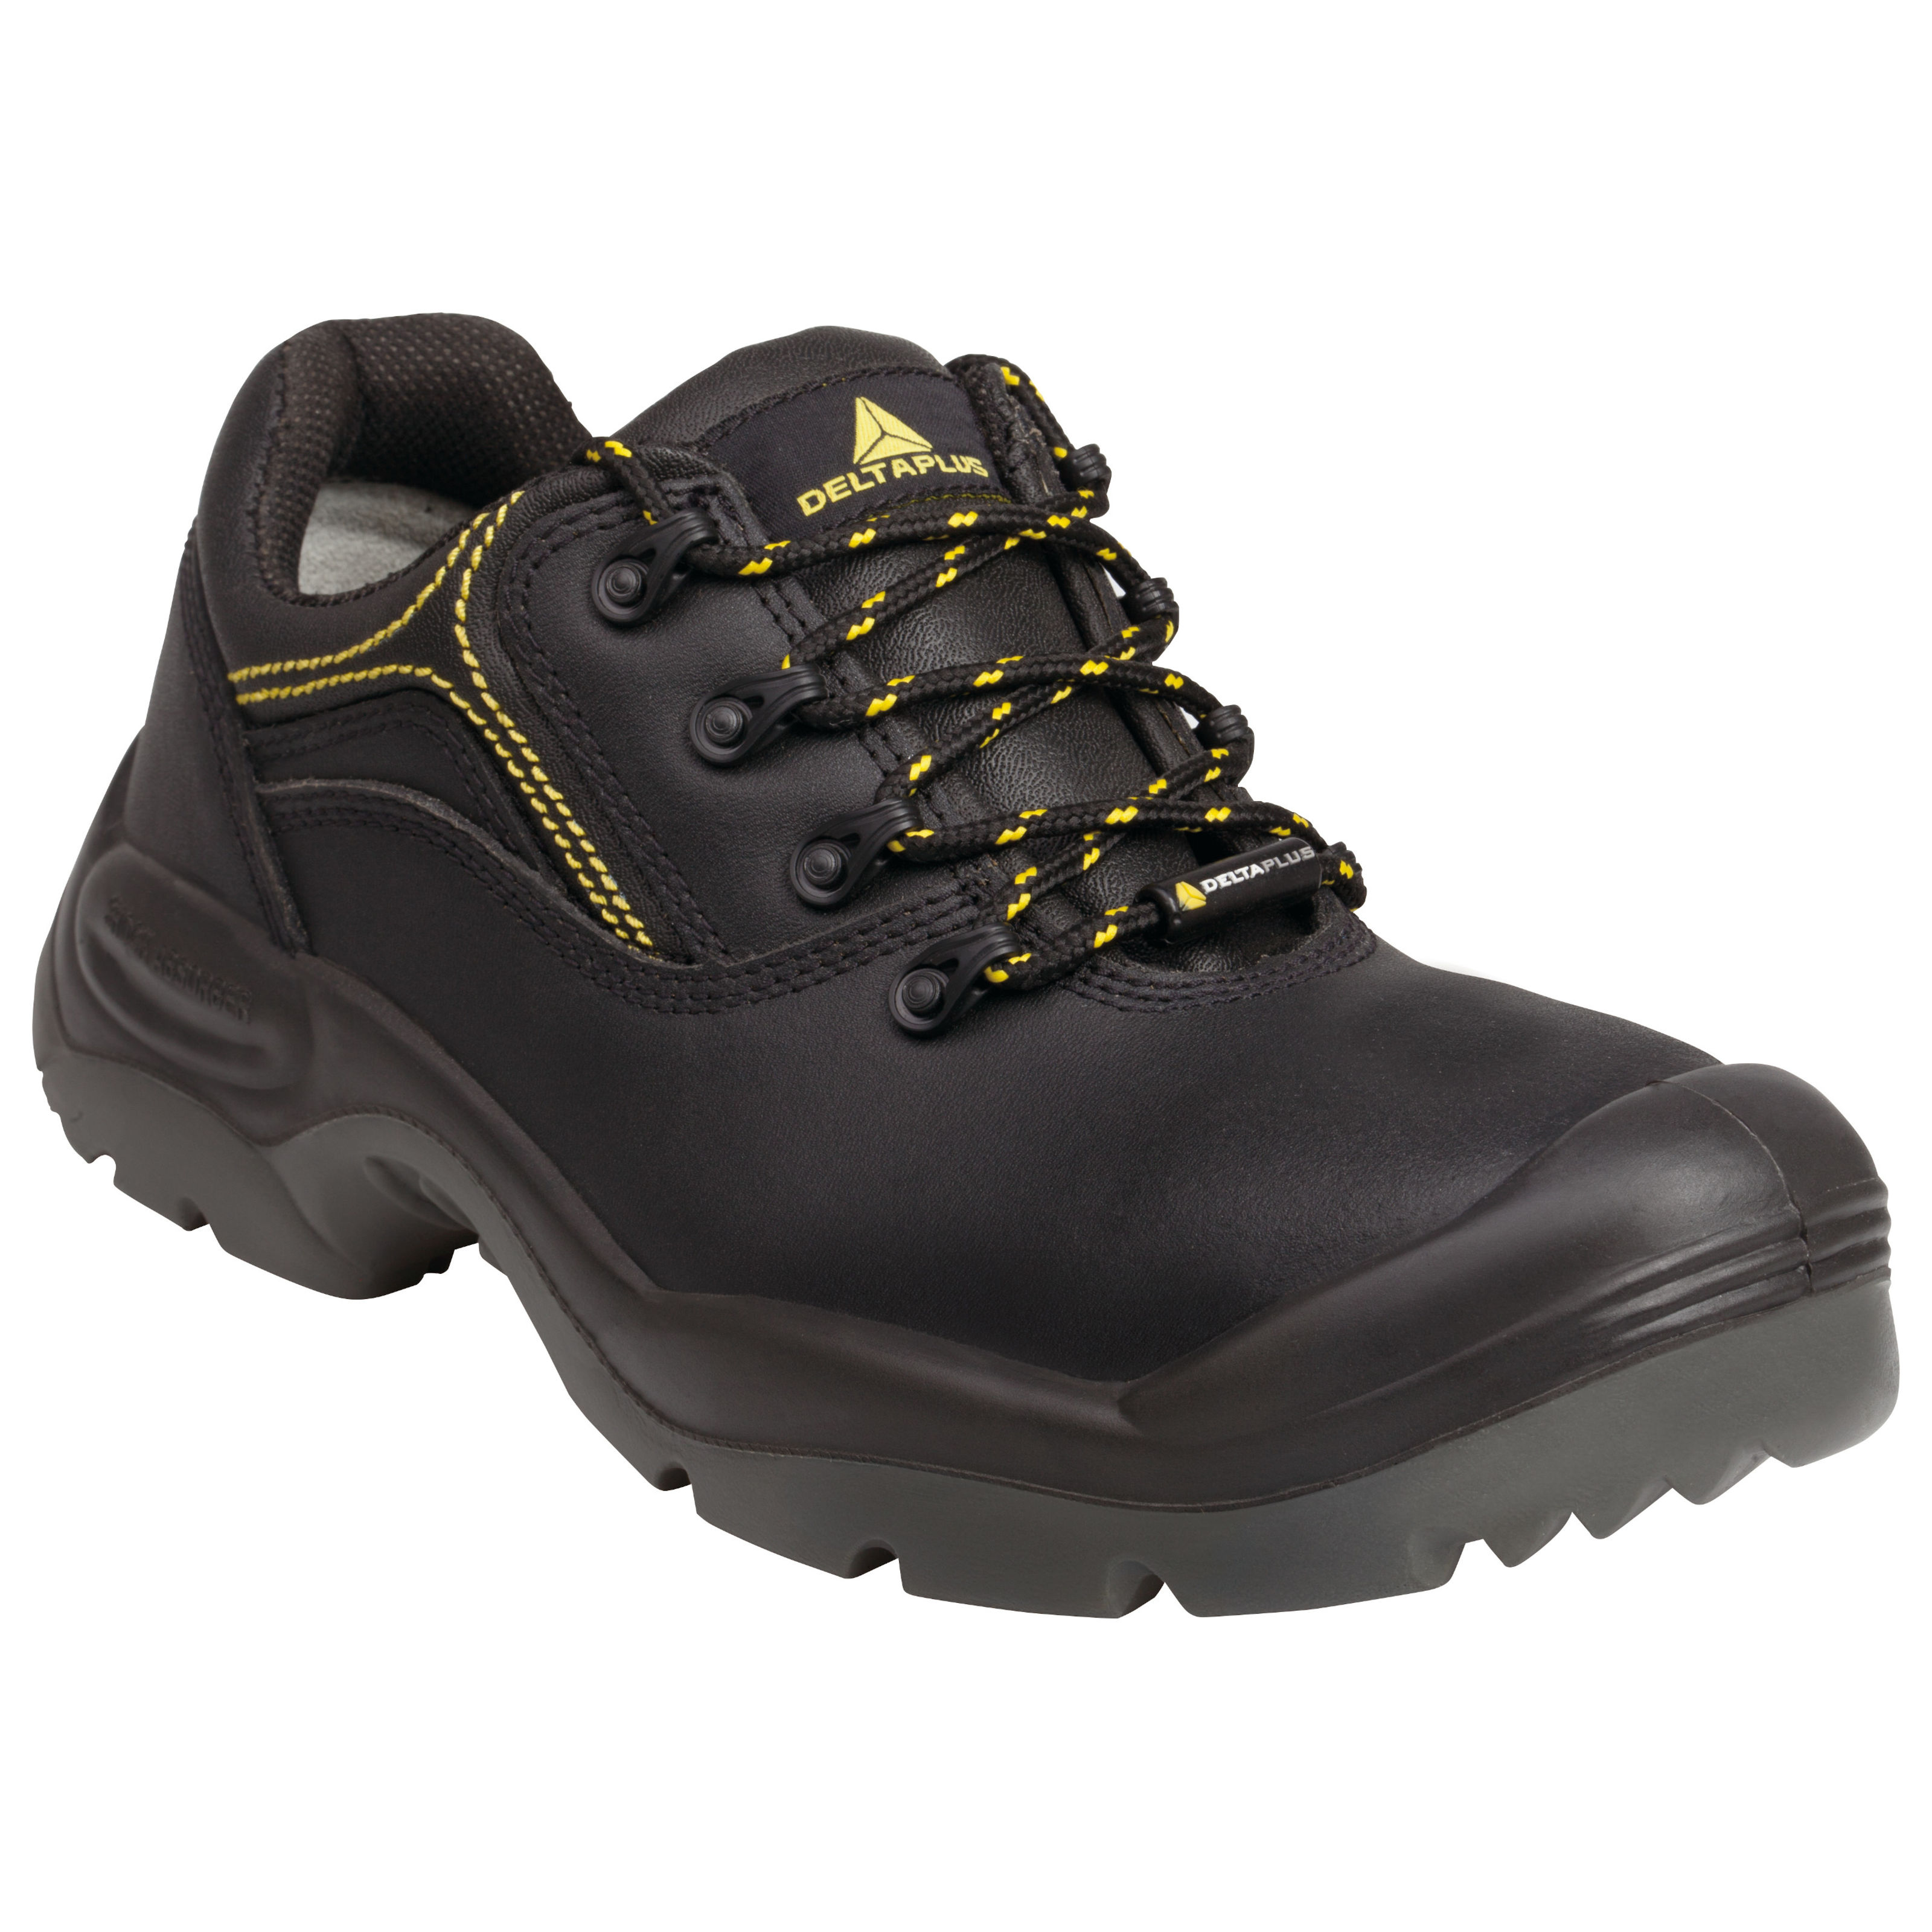 Toe Cap Wide Fitting Safety Shoes